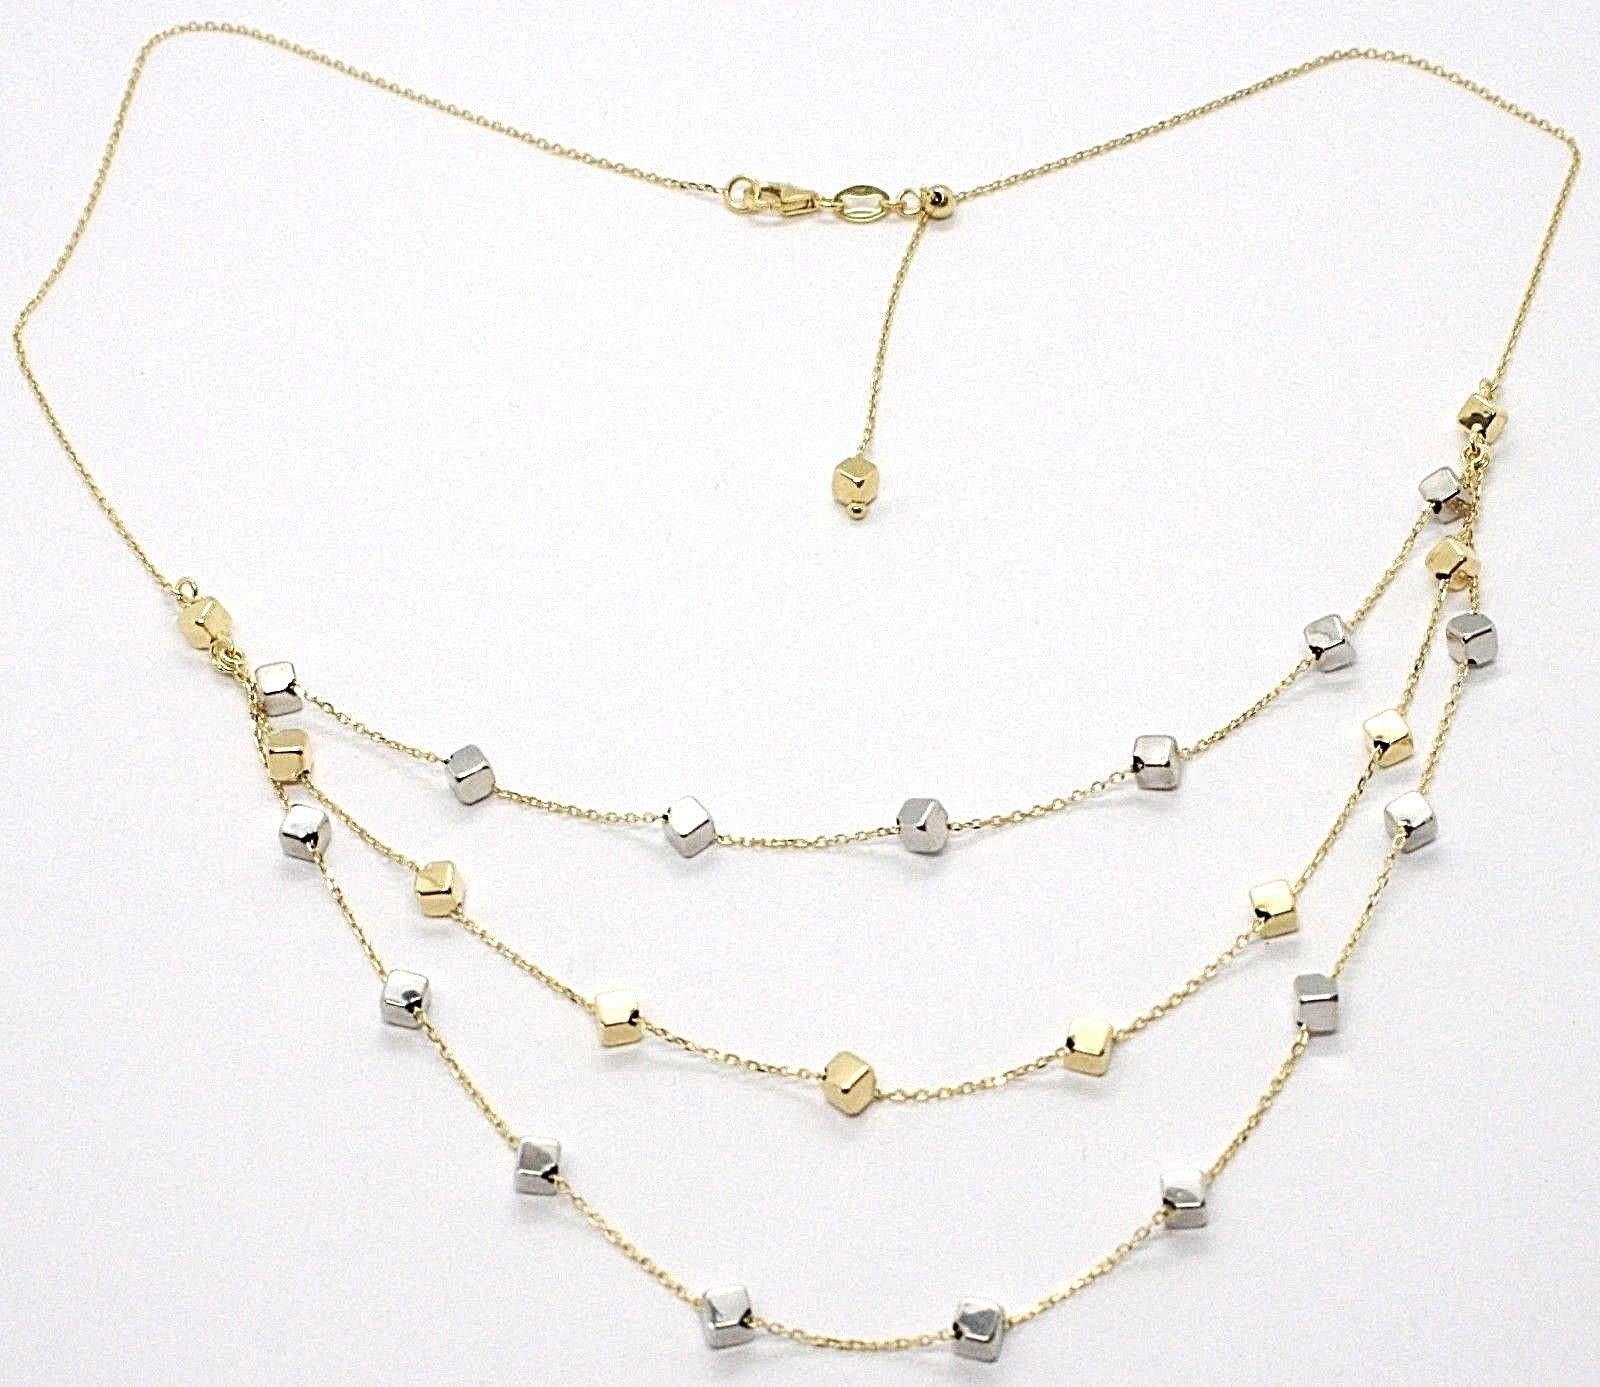 18K YELLOW WHITE GOLD STRAND NECKLACE, MULTI THREE WIRES WITH CUBES, ITALY MADE